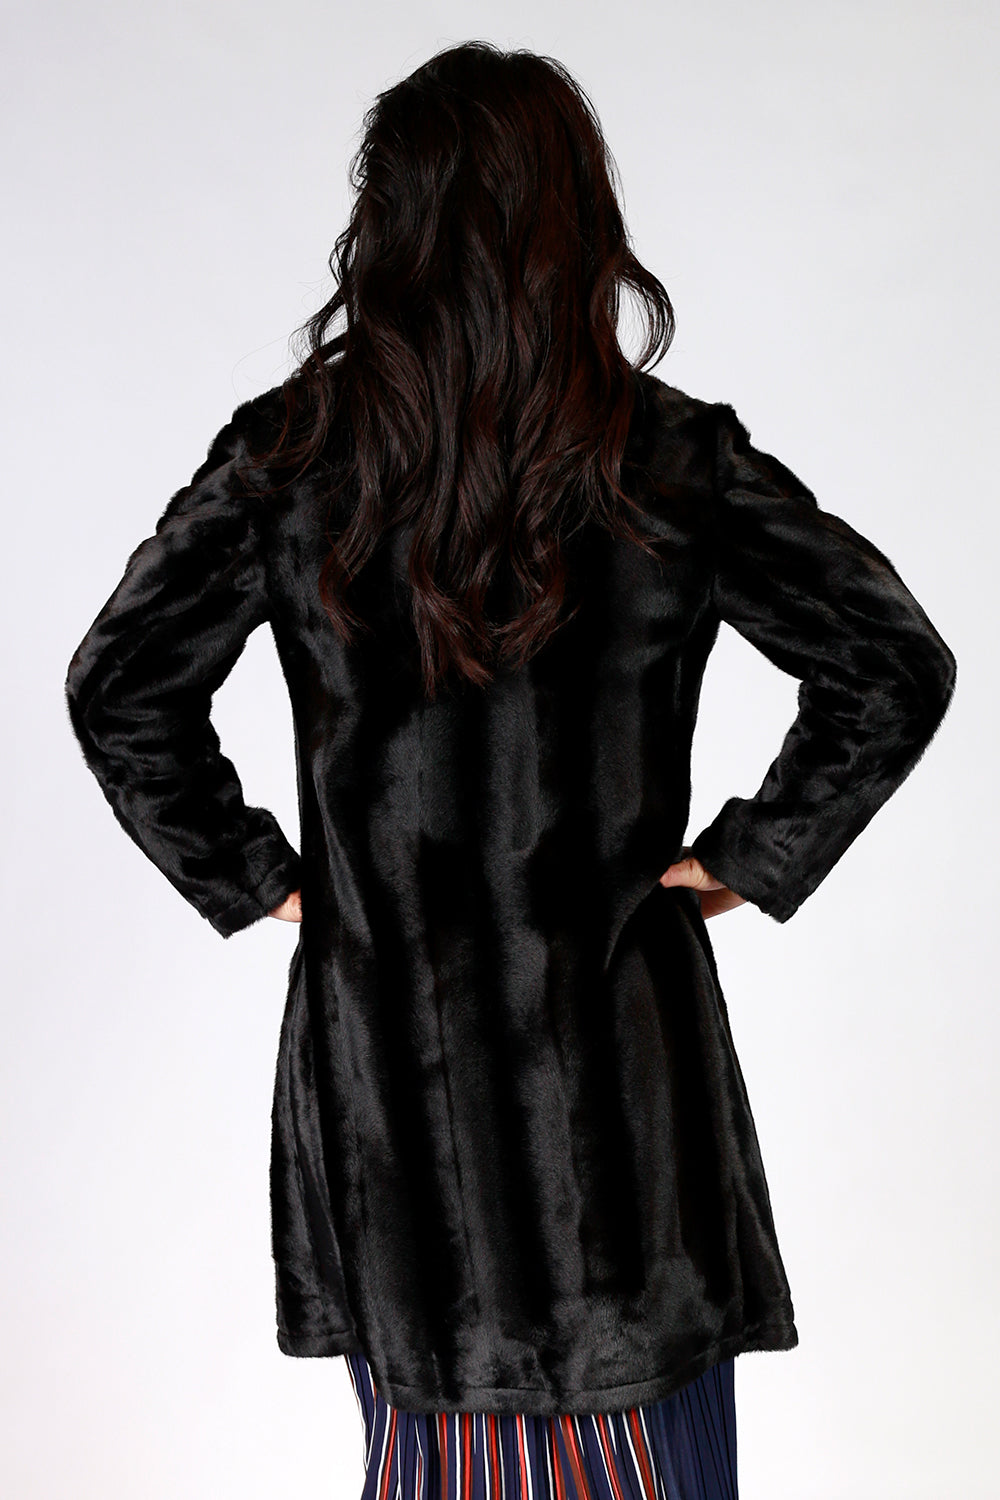 Adoring Aster Coat | Gypsy Fare AW20 | Annah Stretton | Annah Stretton Fashion | Designer Fashion | Black Fur Coat | Faux Fur Coat | Winter Coat | Black Winter Coat | Designer Fur Coat | Annah Stretton NZ | Designer Fashion NZ